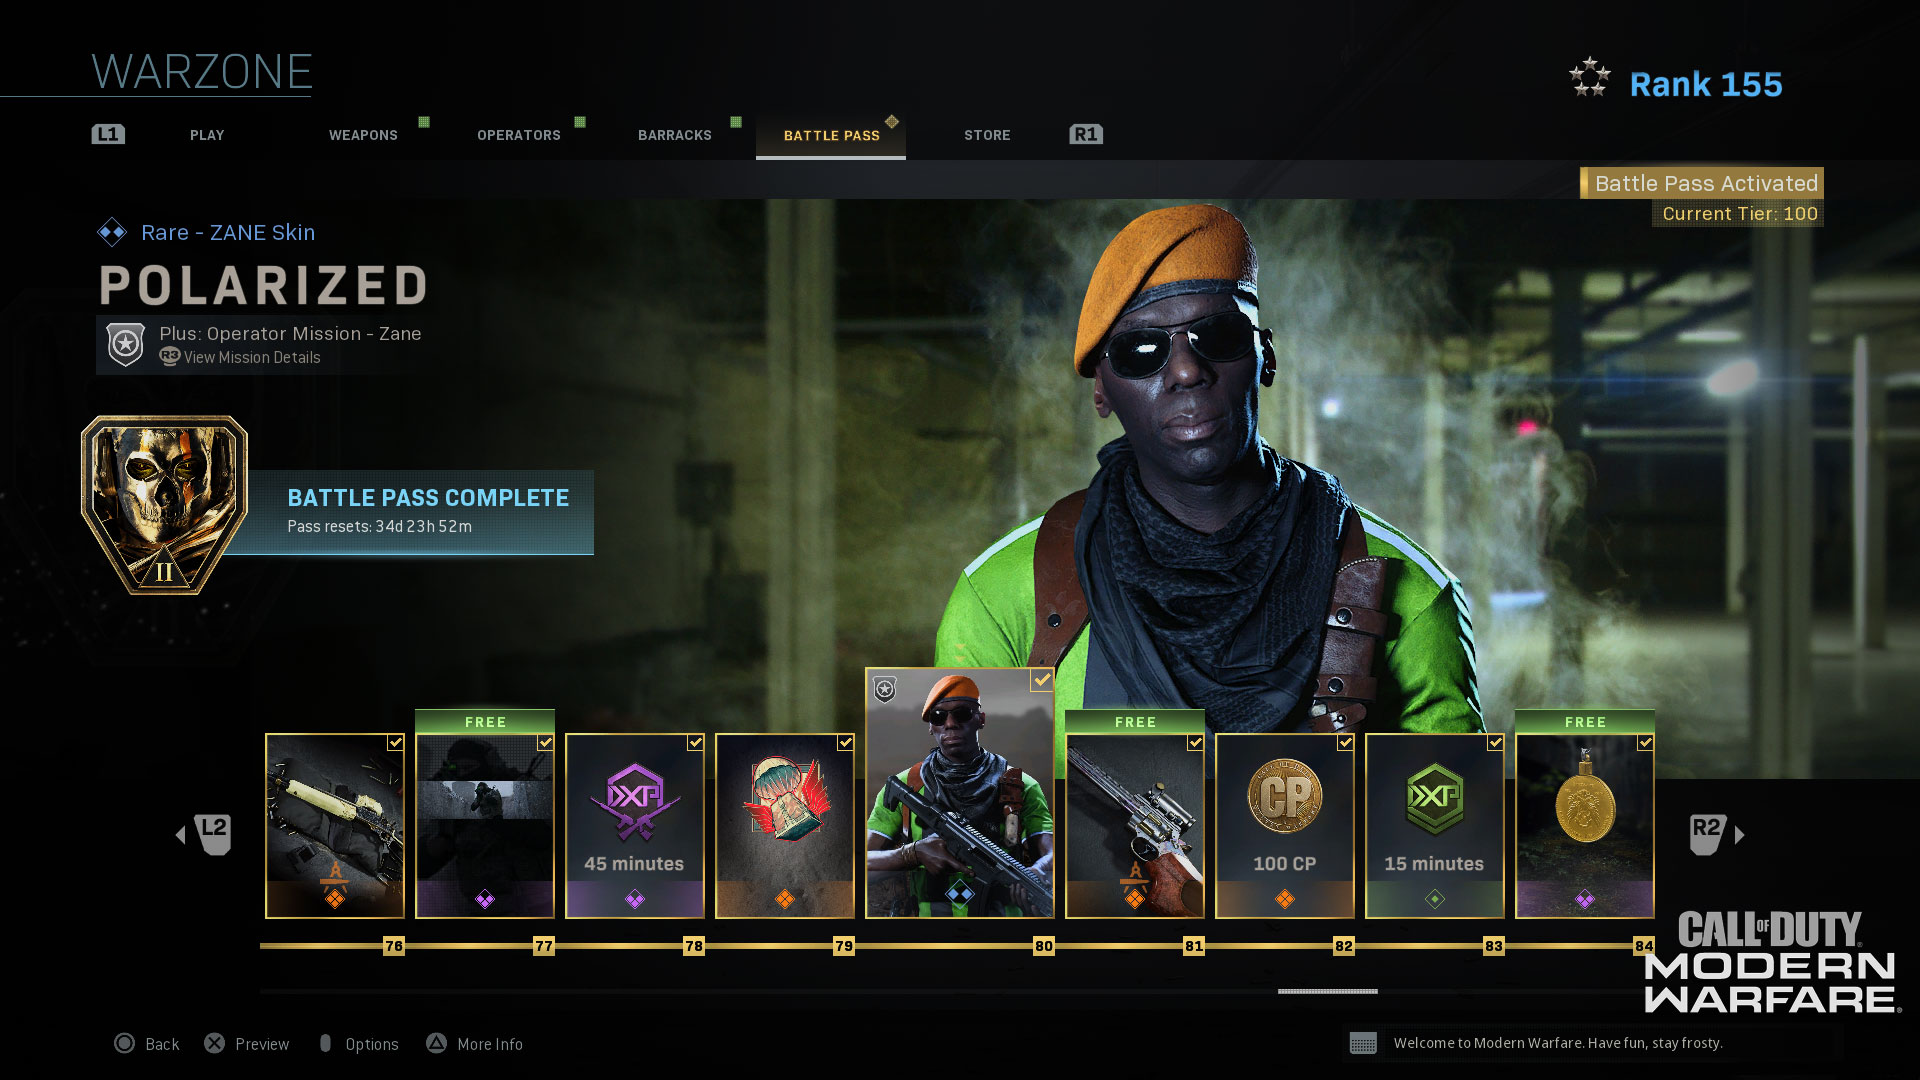 Five Reasons to Complete the Battle Pass, Now - Image 4